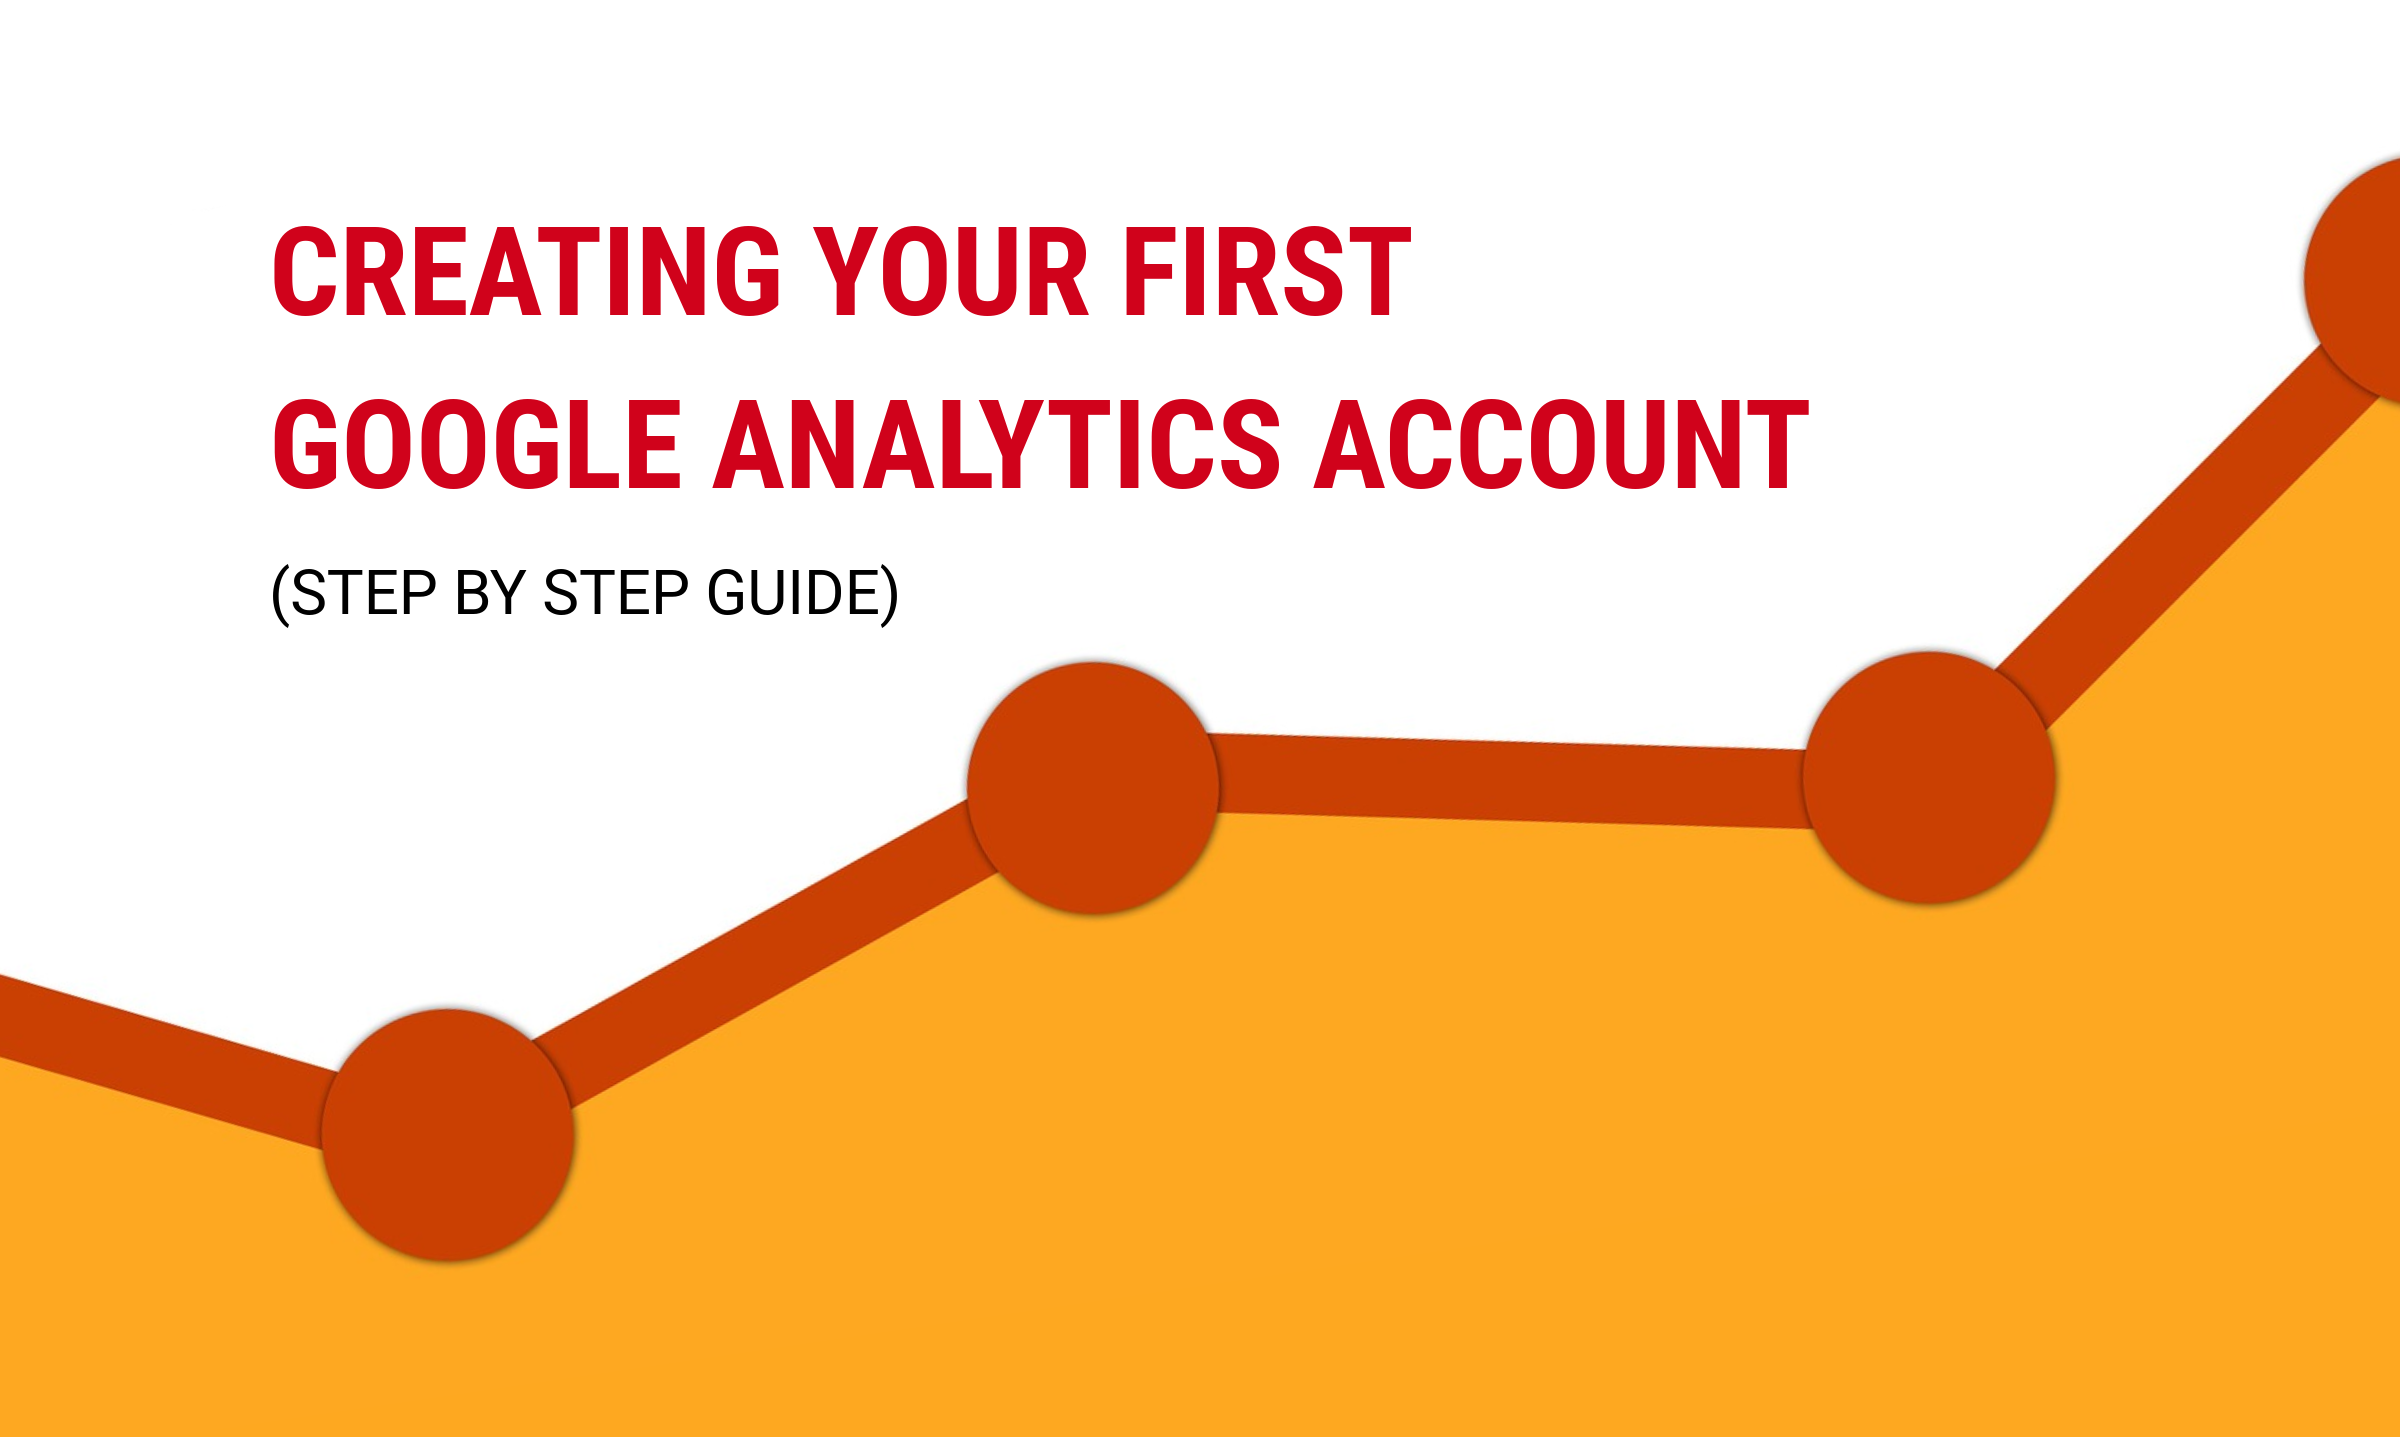 How to create your first Google Analytics account step by step